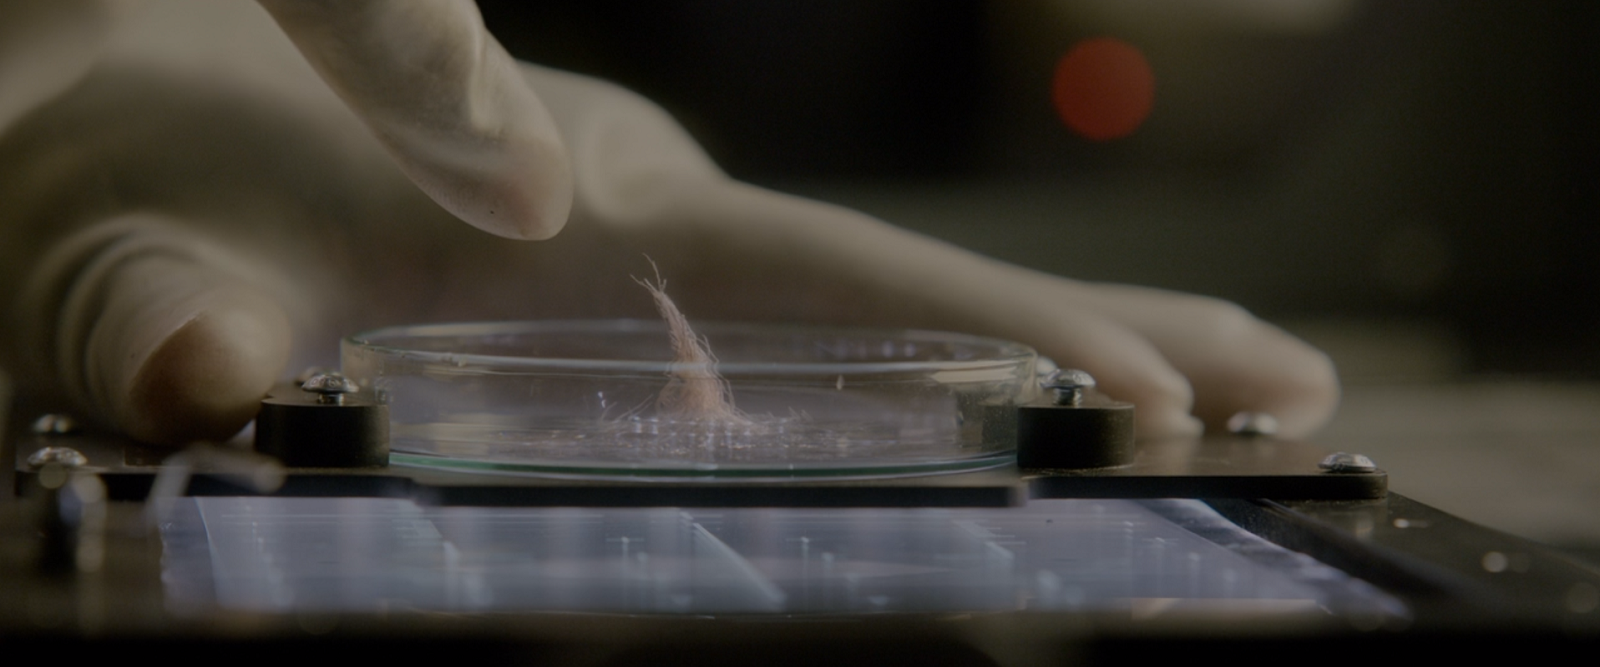 A specimen in a petri dish leaning toward someone's hand in a rubber glove